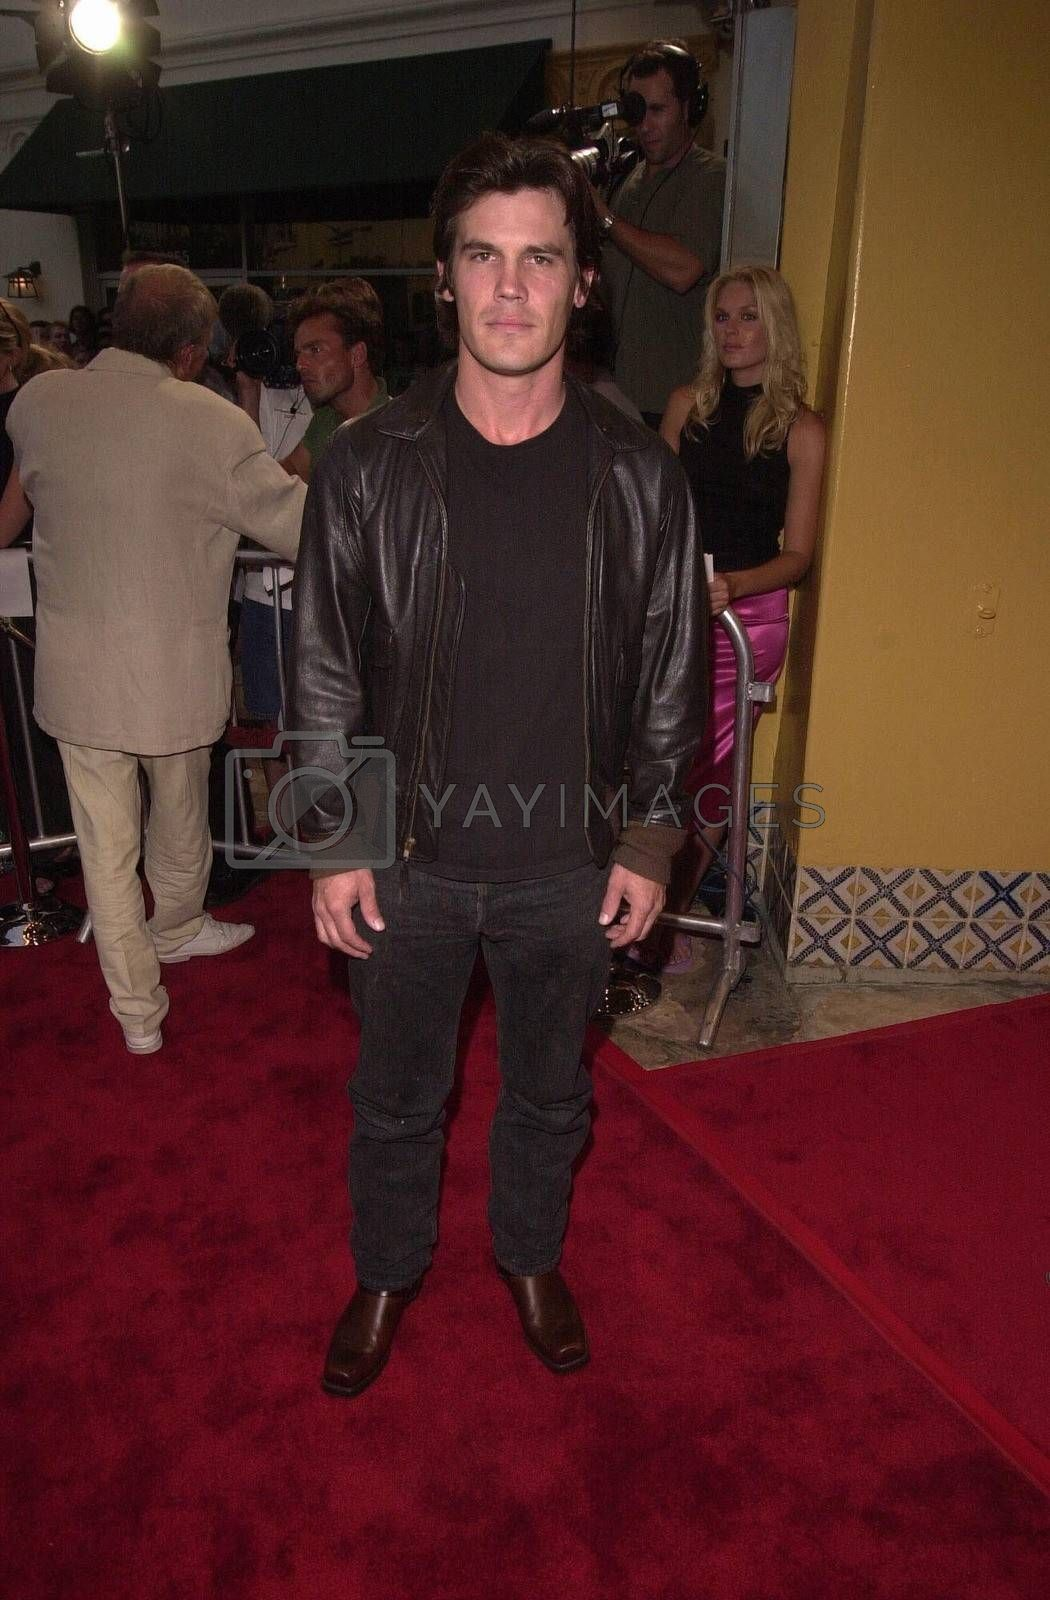 Josh Brolin at the premiere of Hollow Man in Westwood. 08-02-00